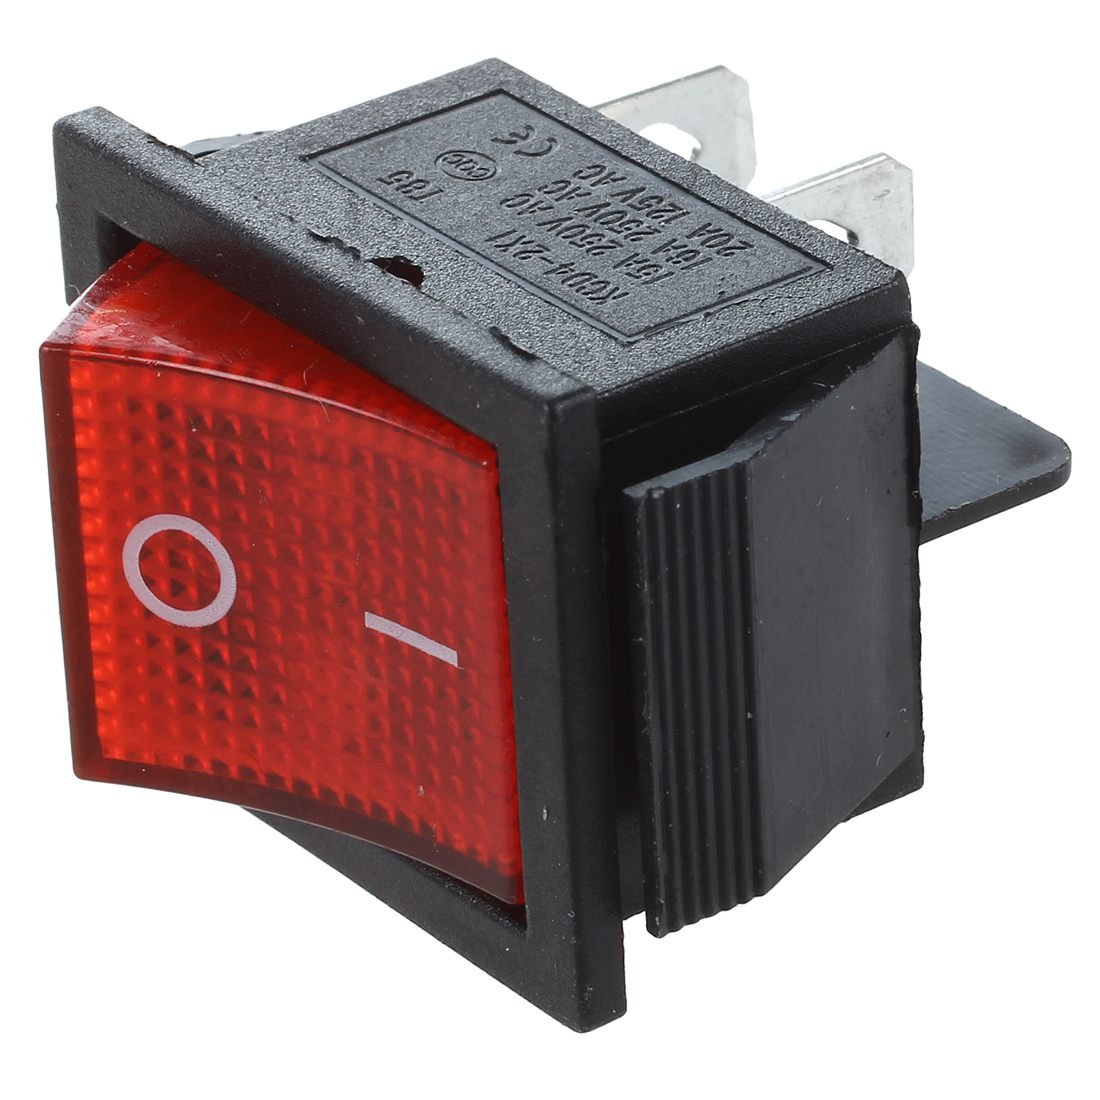 TOOGOO(R) 16A/250V 20A/125V AC Red Neon Light ON/OFF DPST Boat Rocker Switch 5 Pcs by TOOGOO(R) (Image #4)